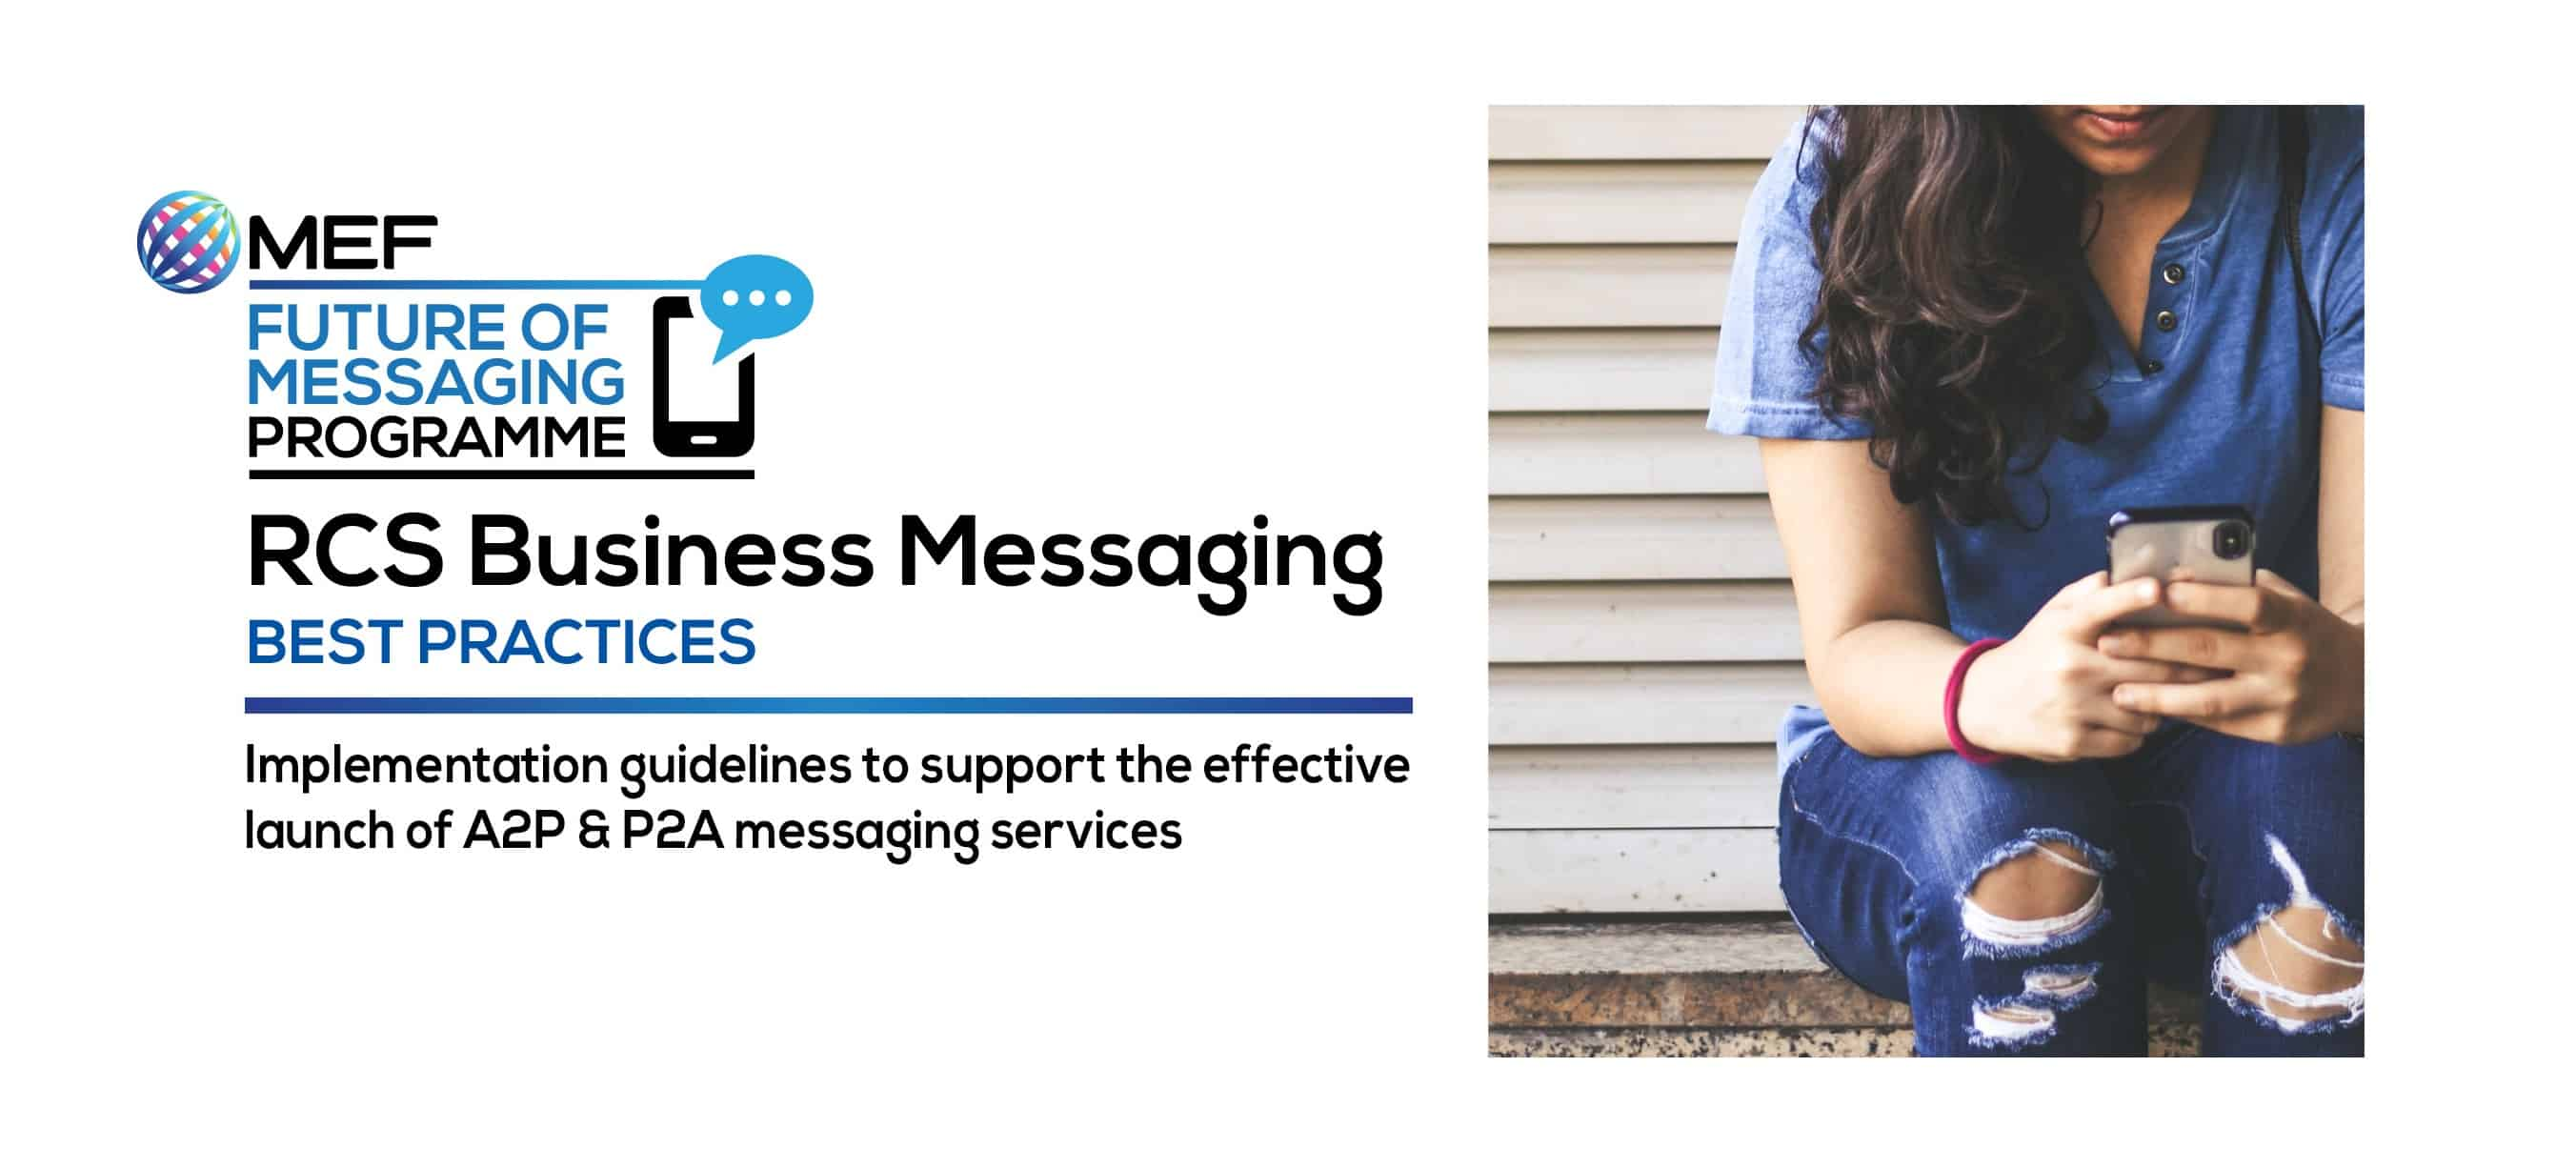 RCS Business Messaging Guidelines